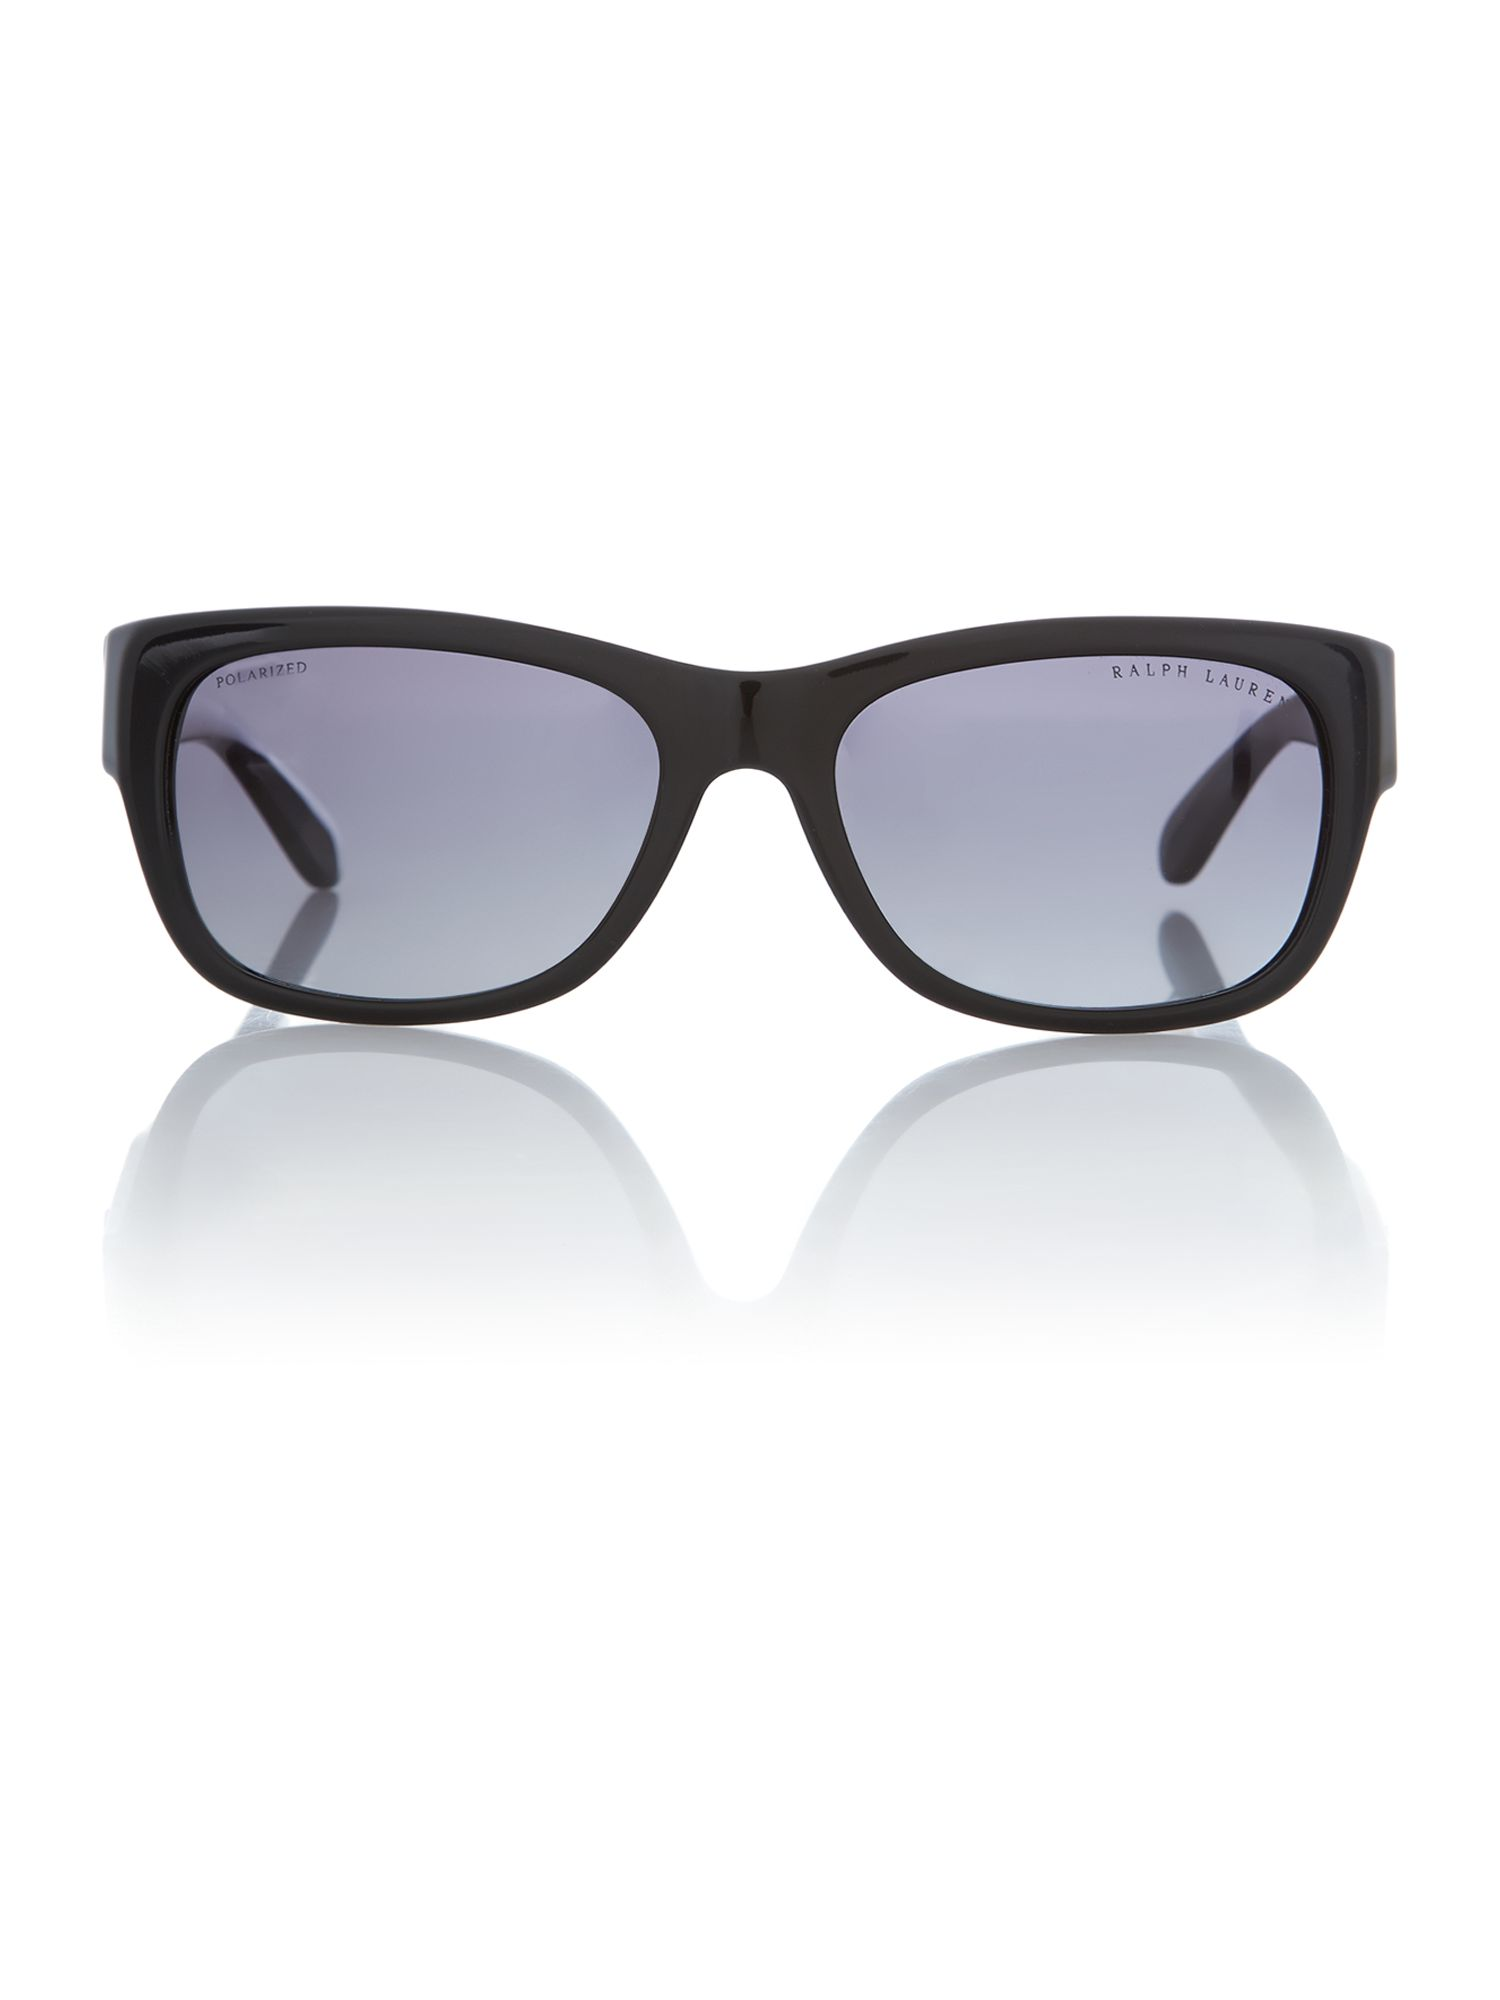 Rl8106 ladies rectangle sunglasses